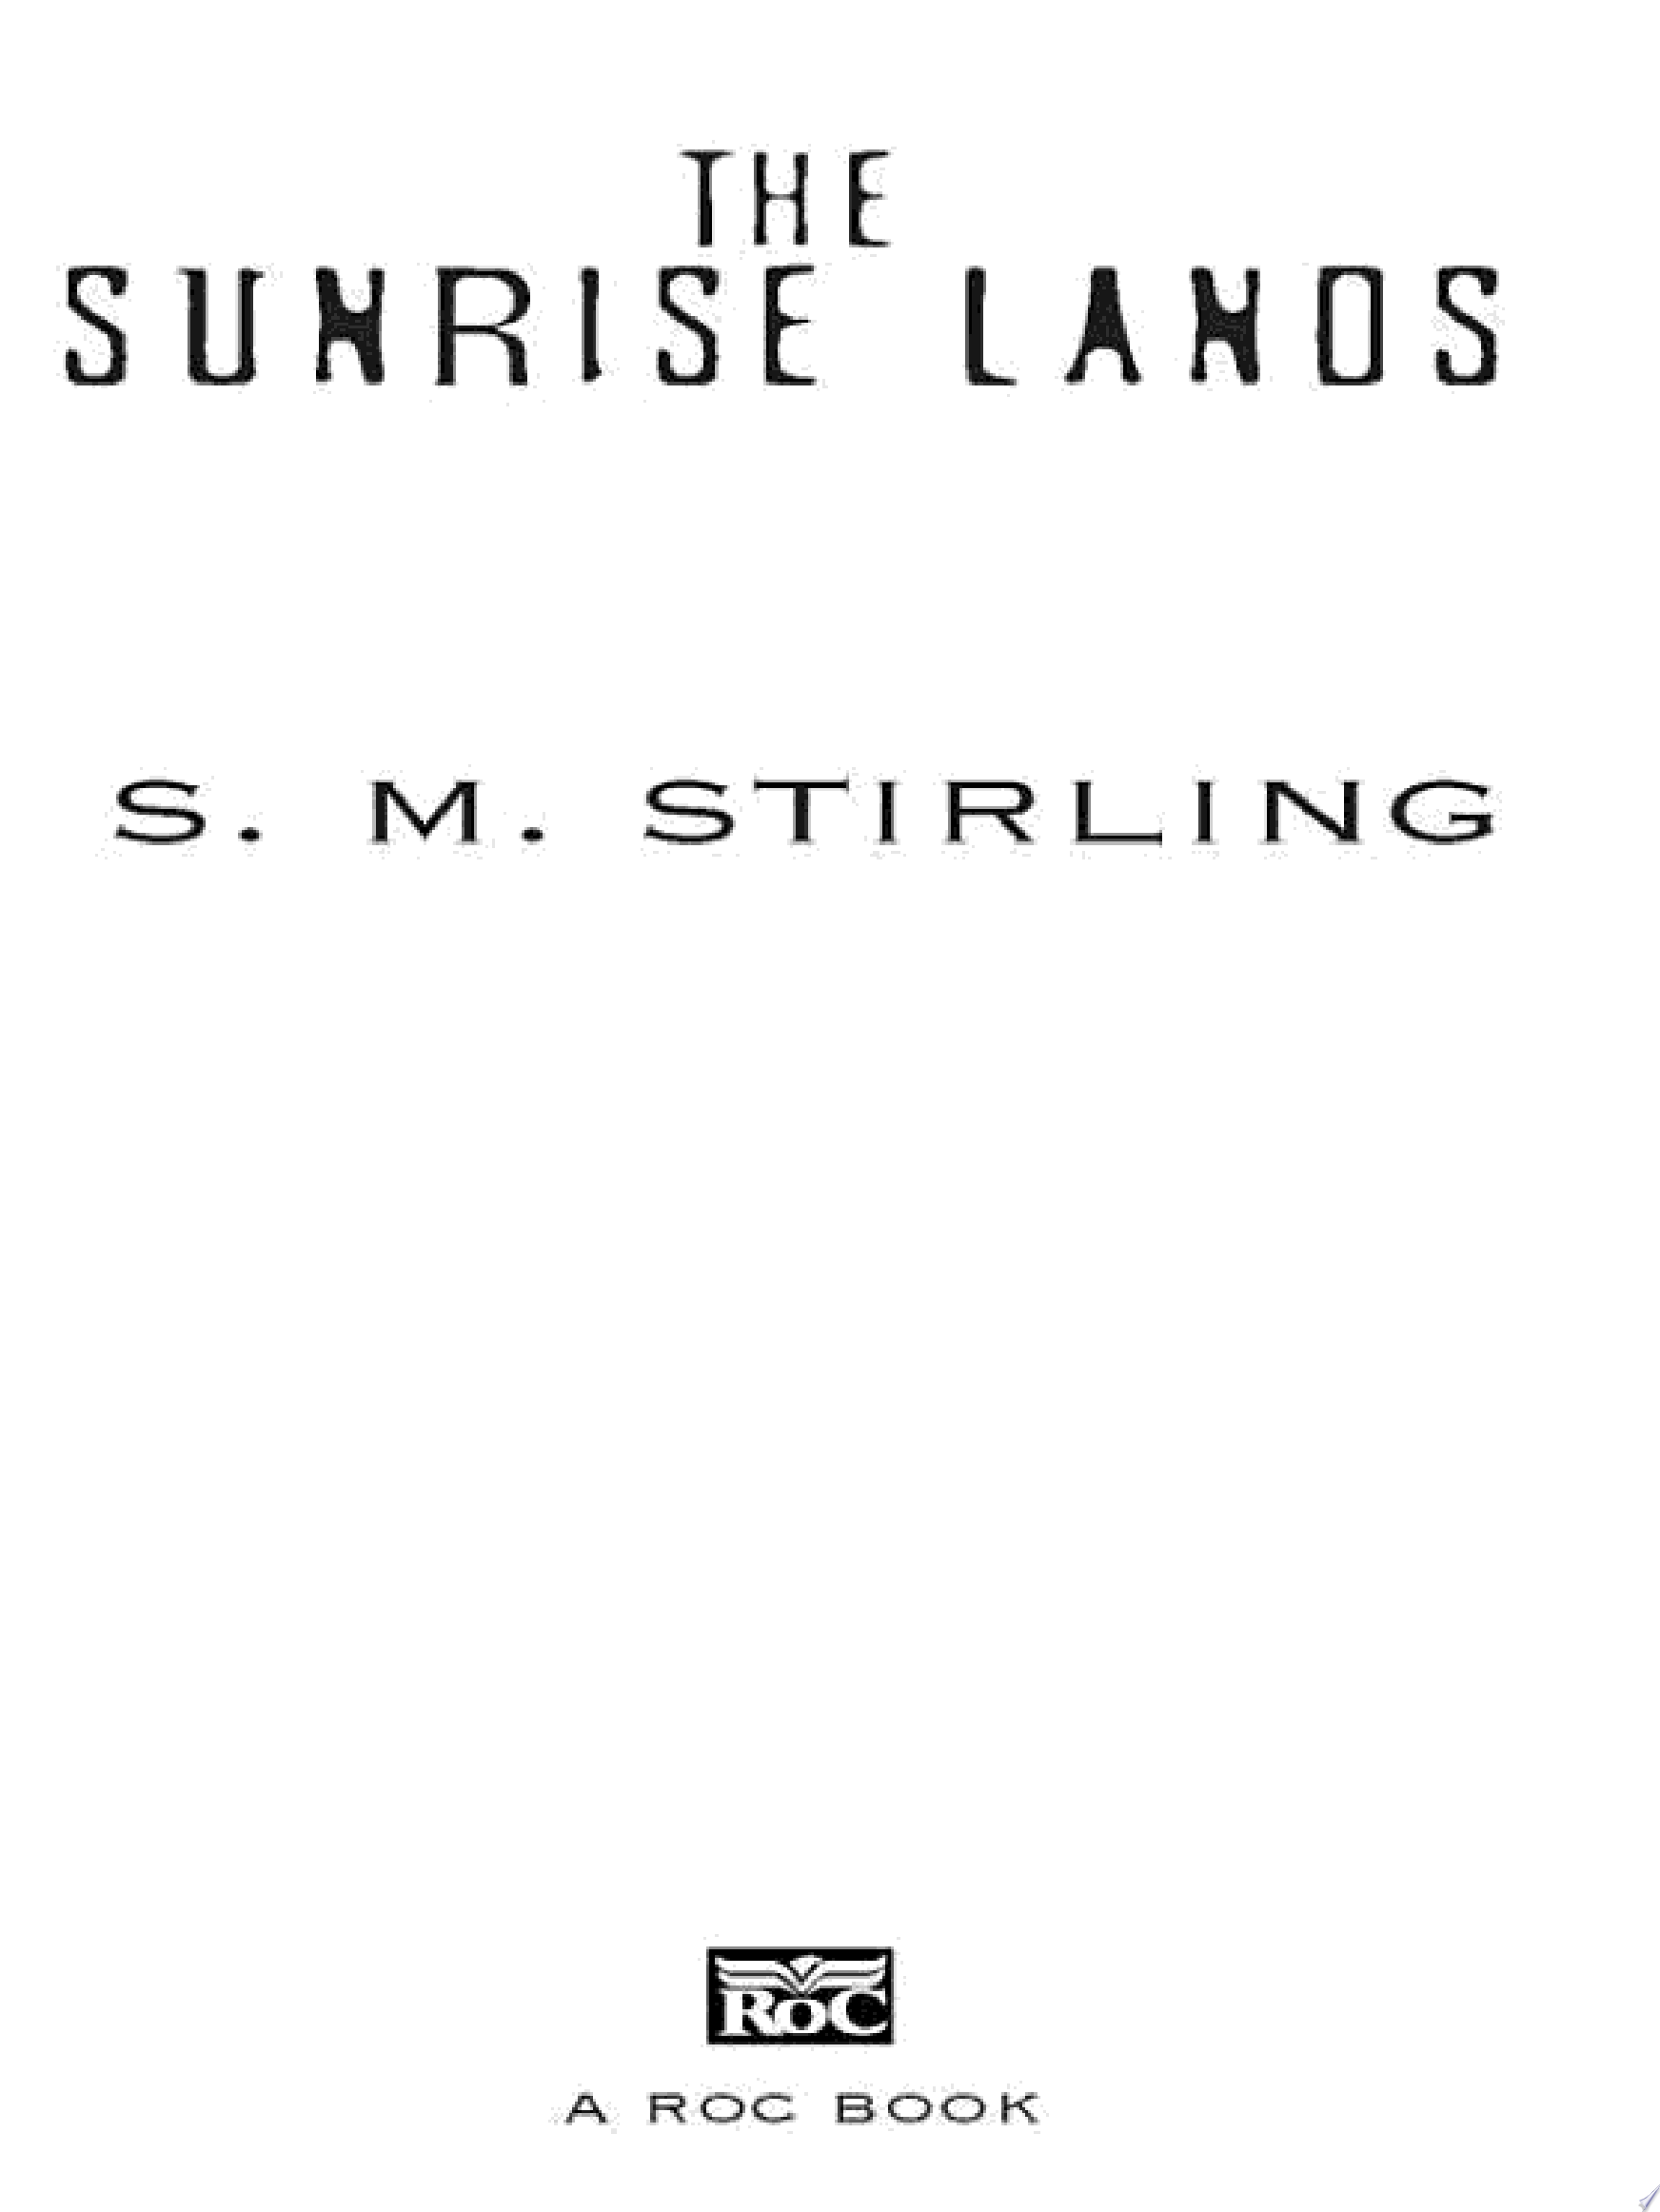 The Sunrise Lands